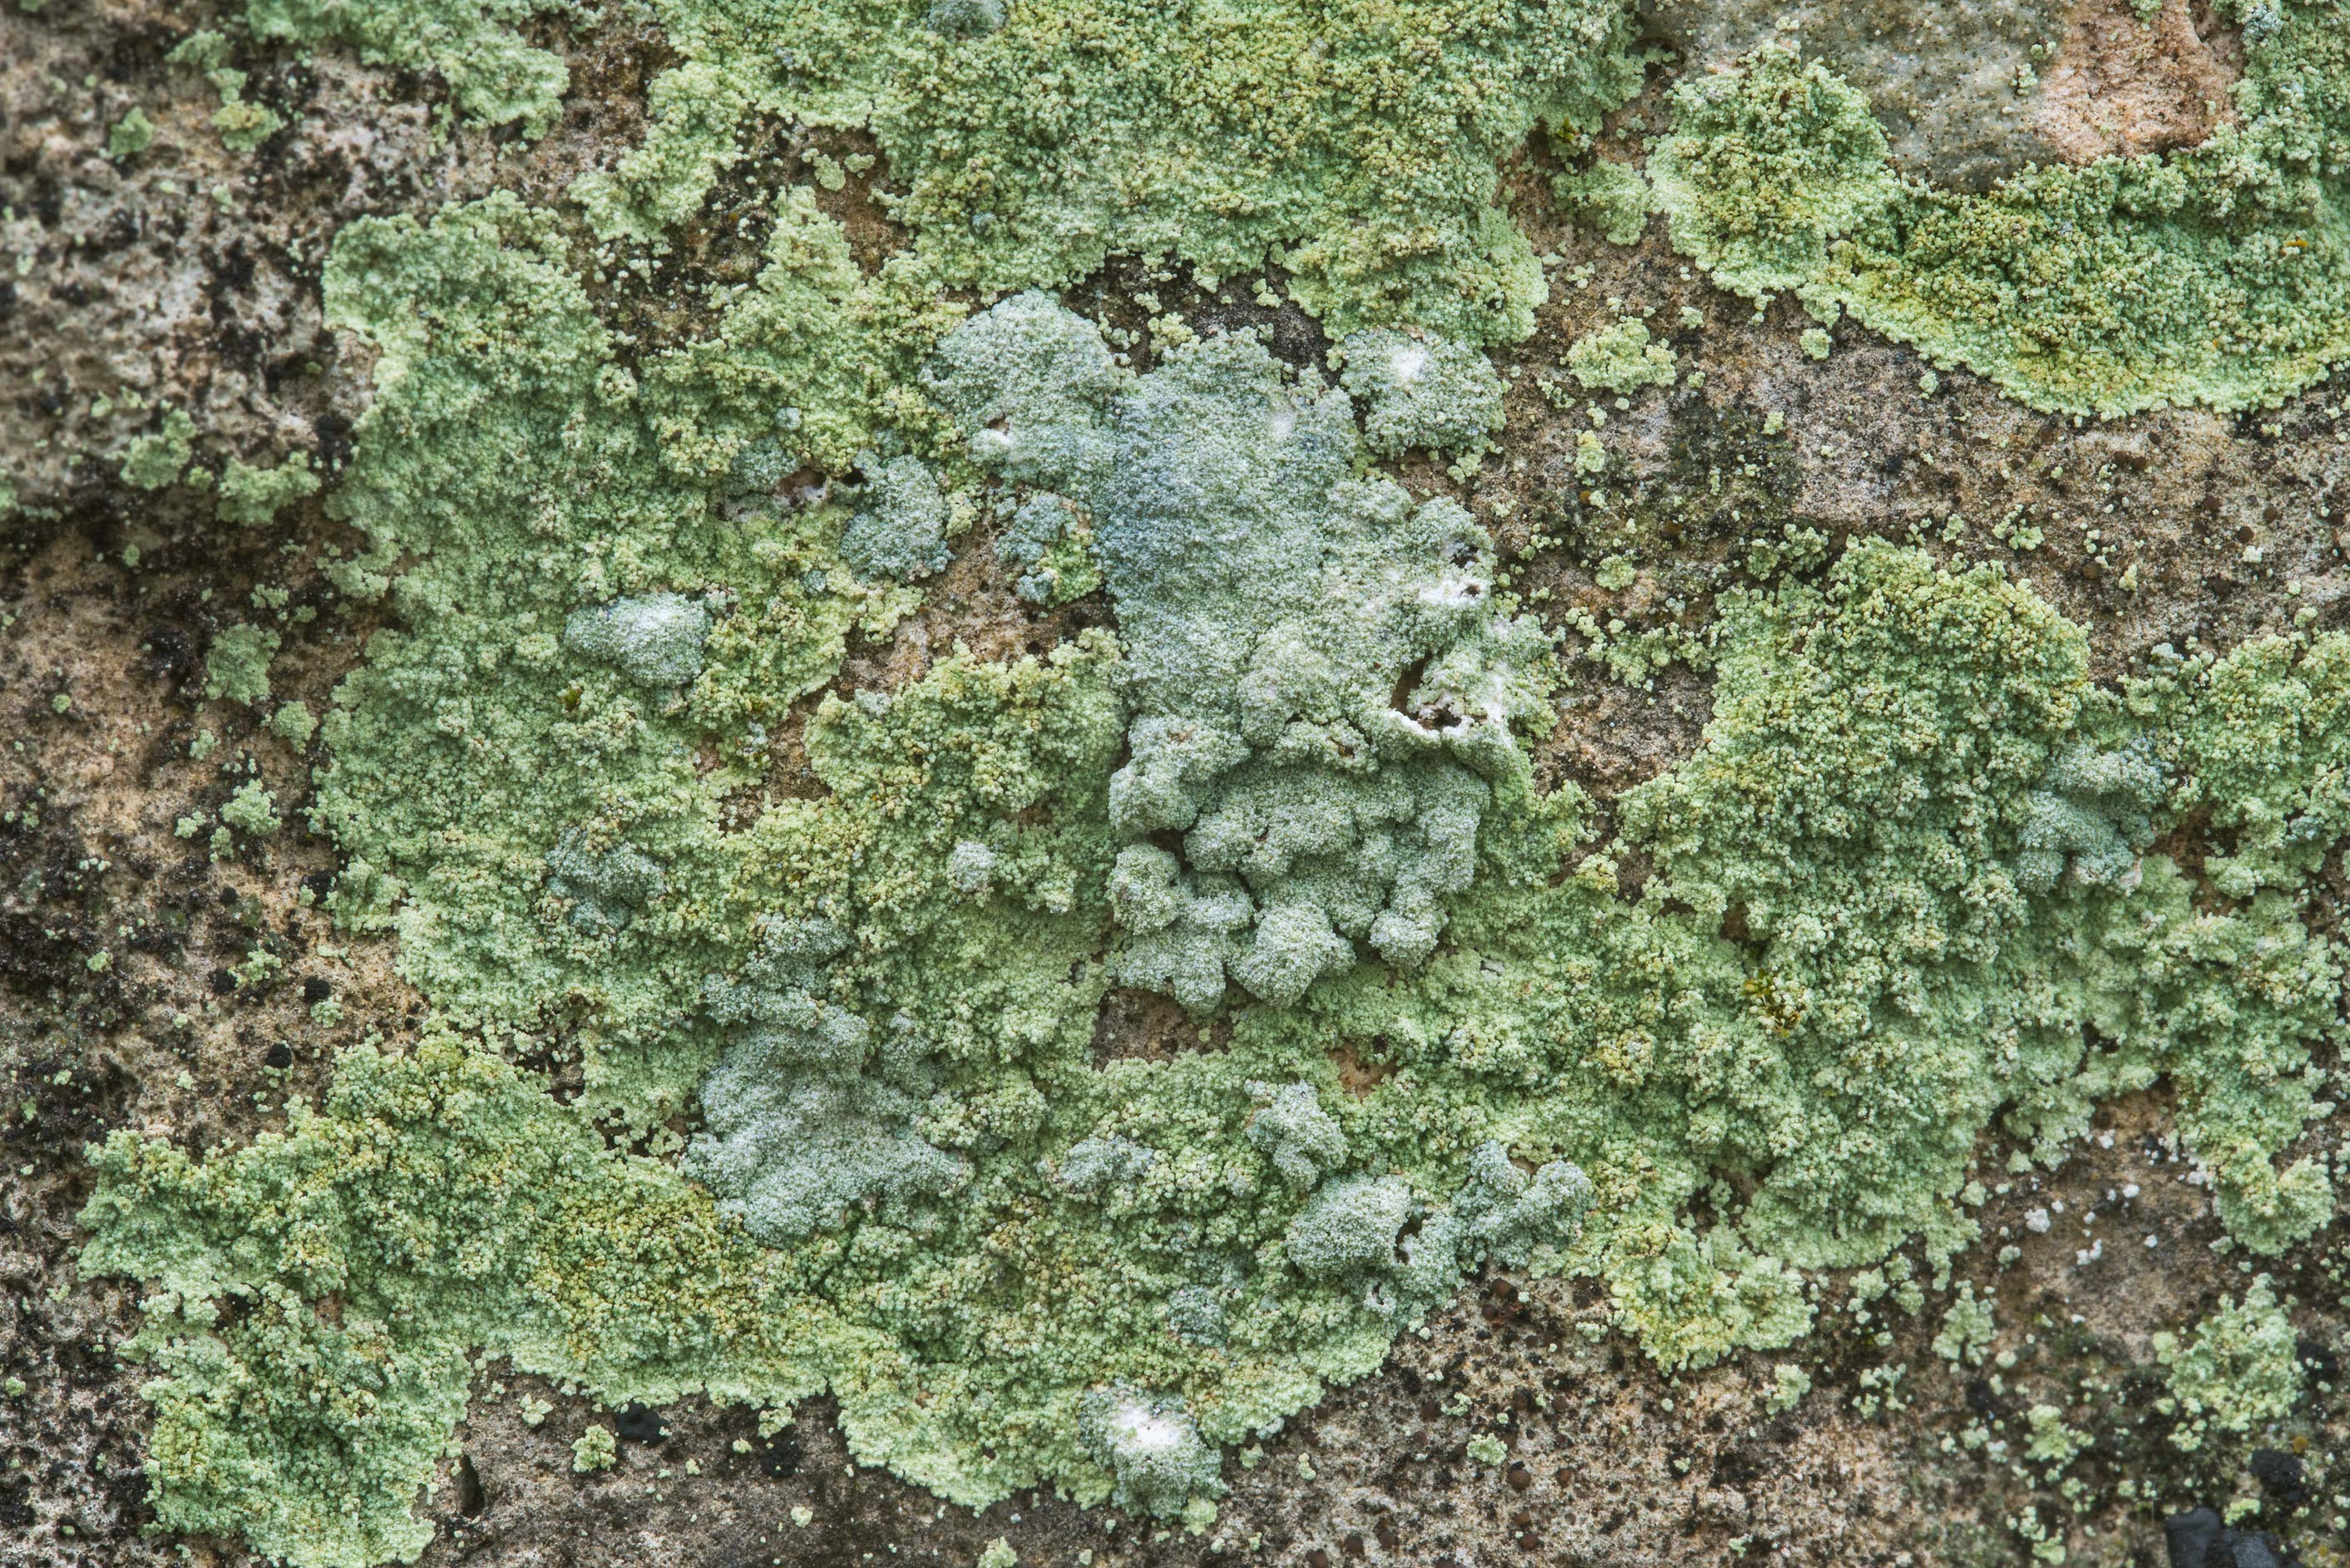 Dust lichen (Lepraria) on limestone in shade of...Falls State Park. Johnson City, Texas